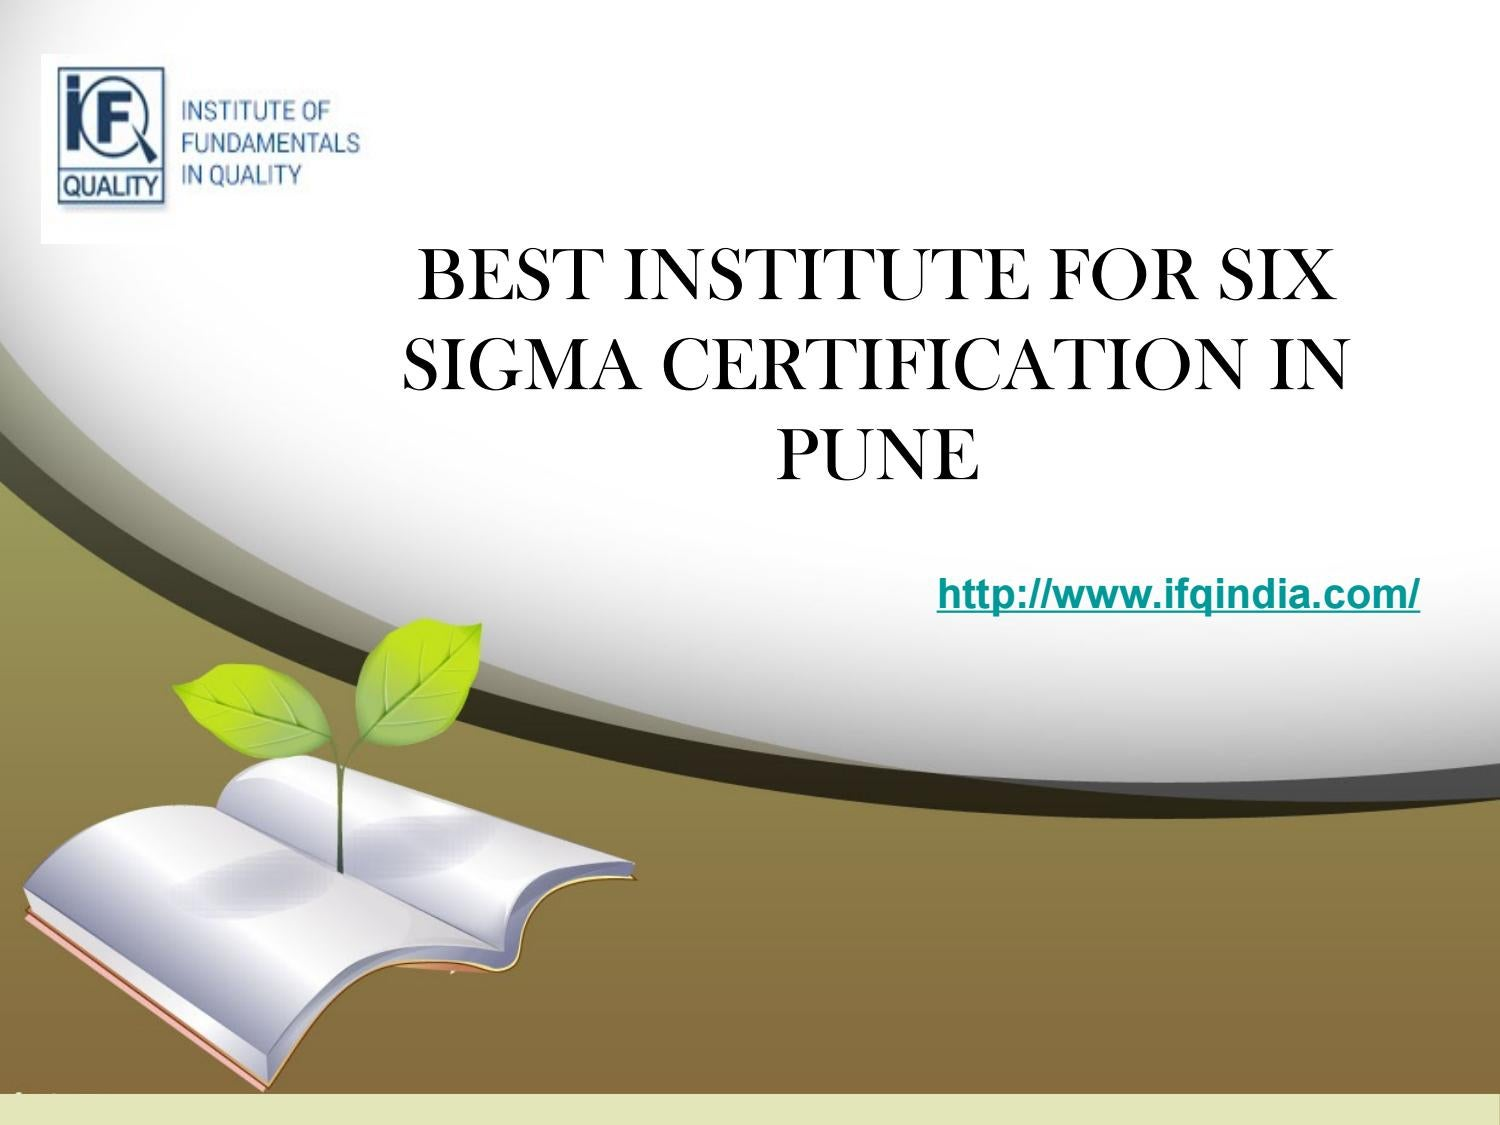 Best Institute For Six Sigma Certification In Pune By Ifqindia Issuu